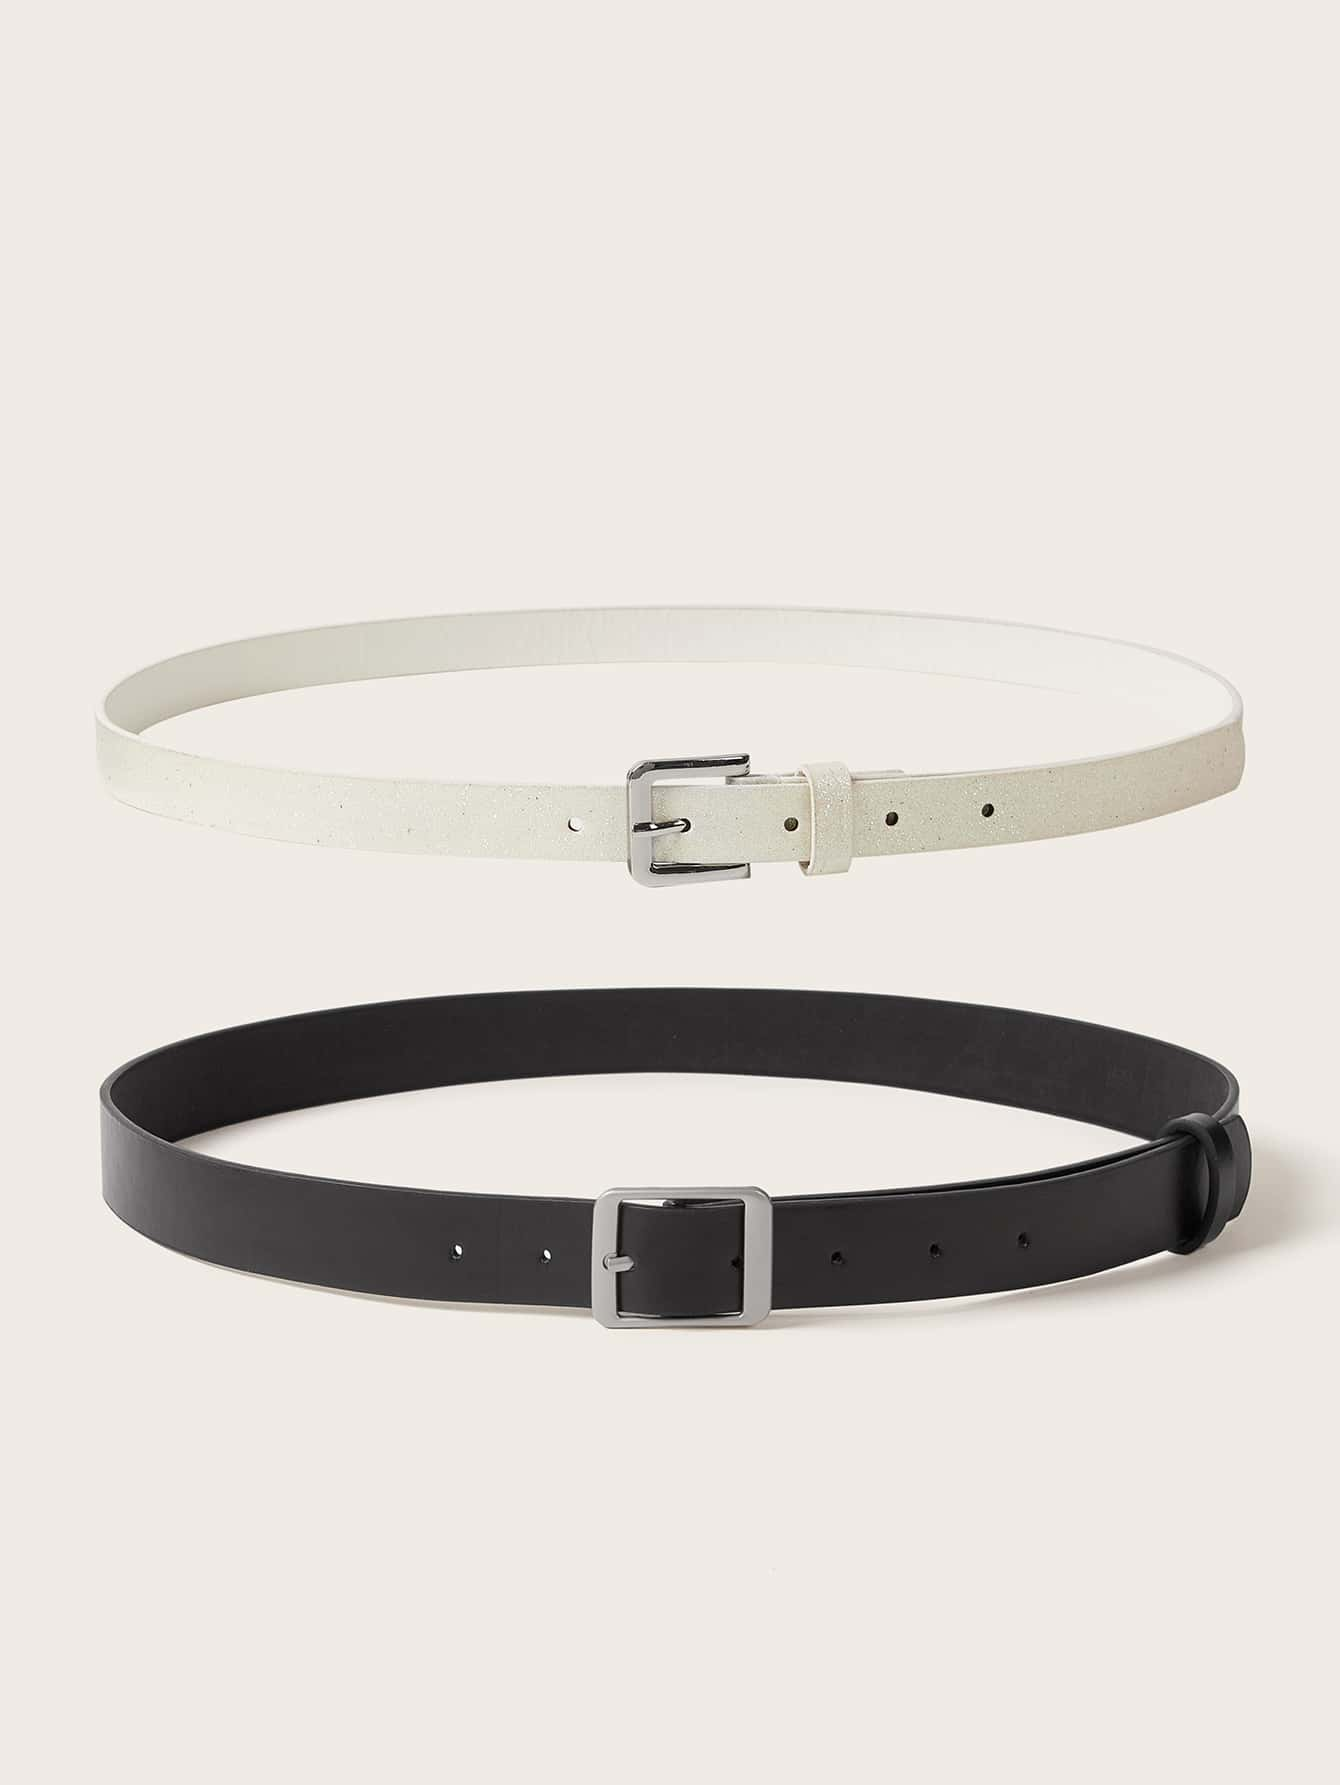 2pcs Metal Buckle Belt - FLJ CORPORATIONS